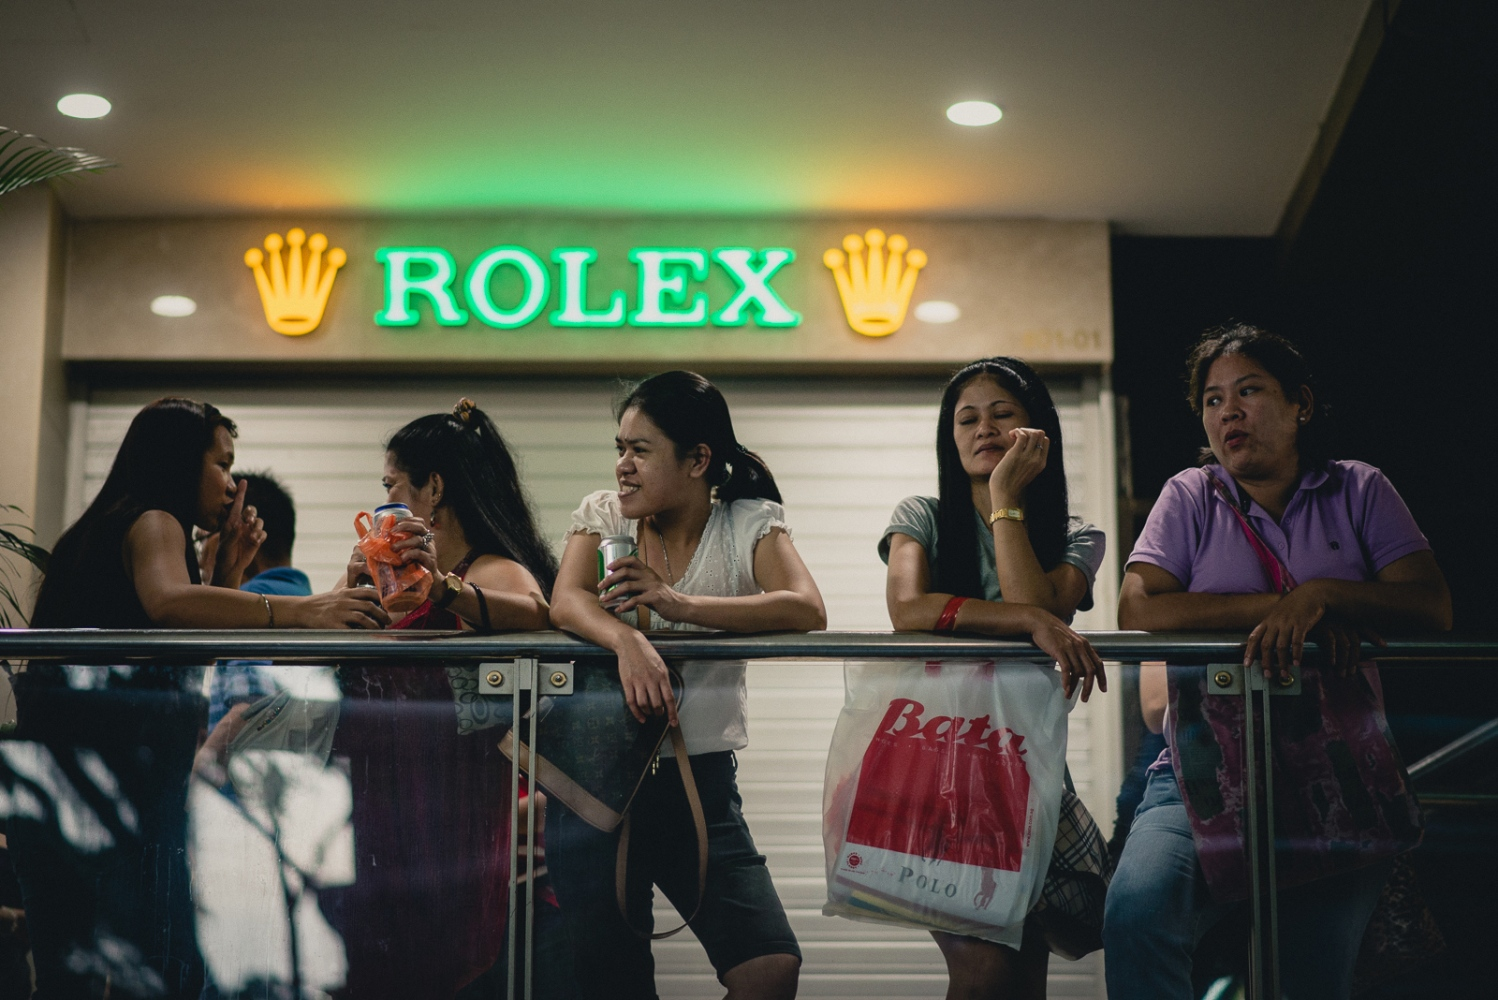 Singapore. Foreign domestic workers on their day off congregate outside the Lucky Plaza shopping centre along Orchard Road, one of the most popular shopping streets in Singapore.